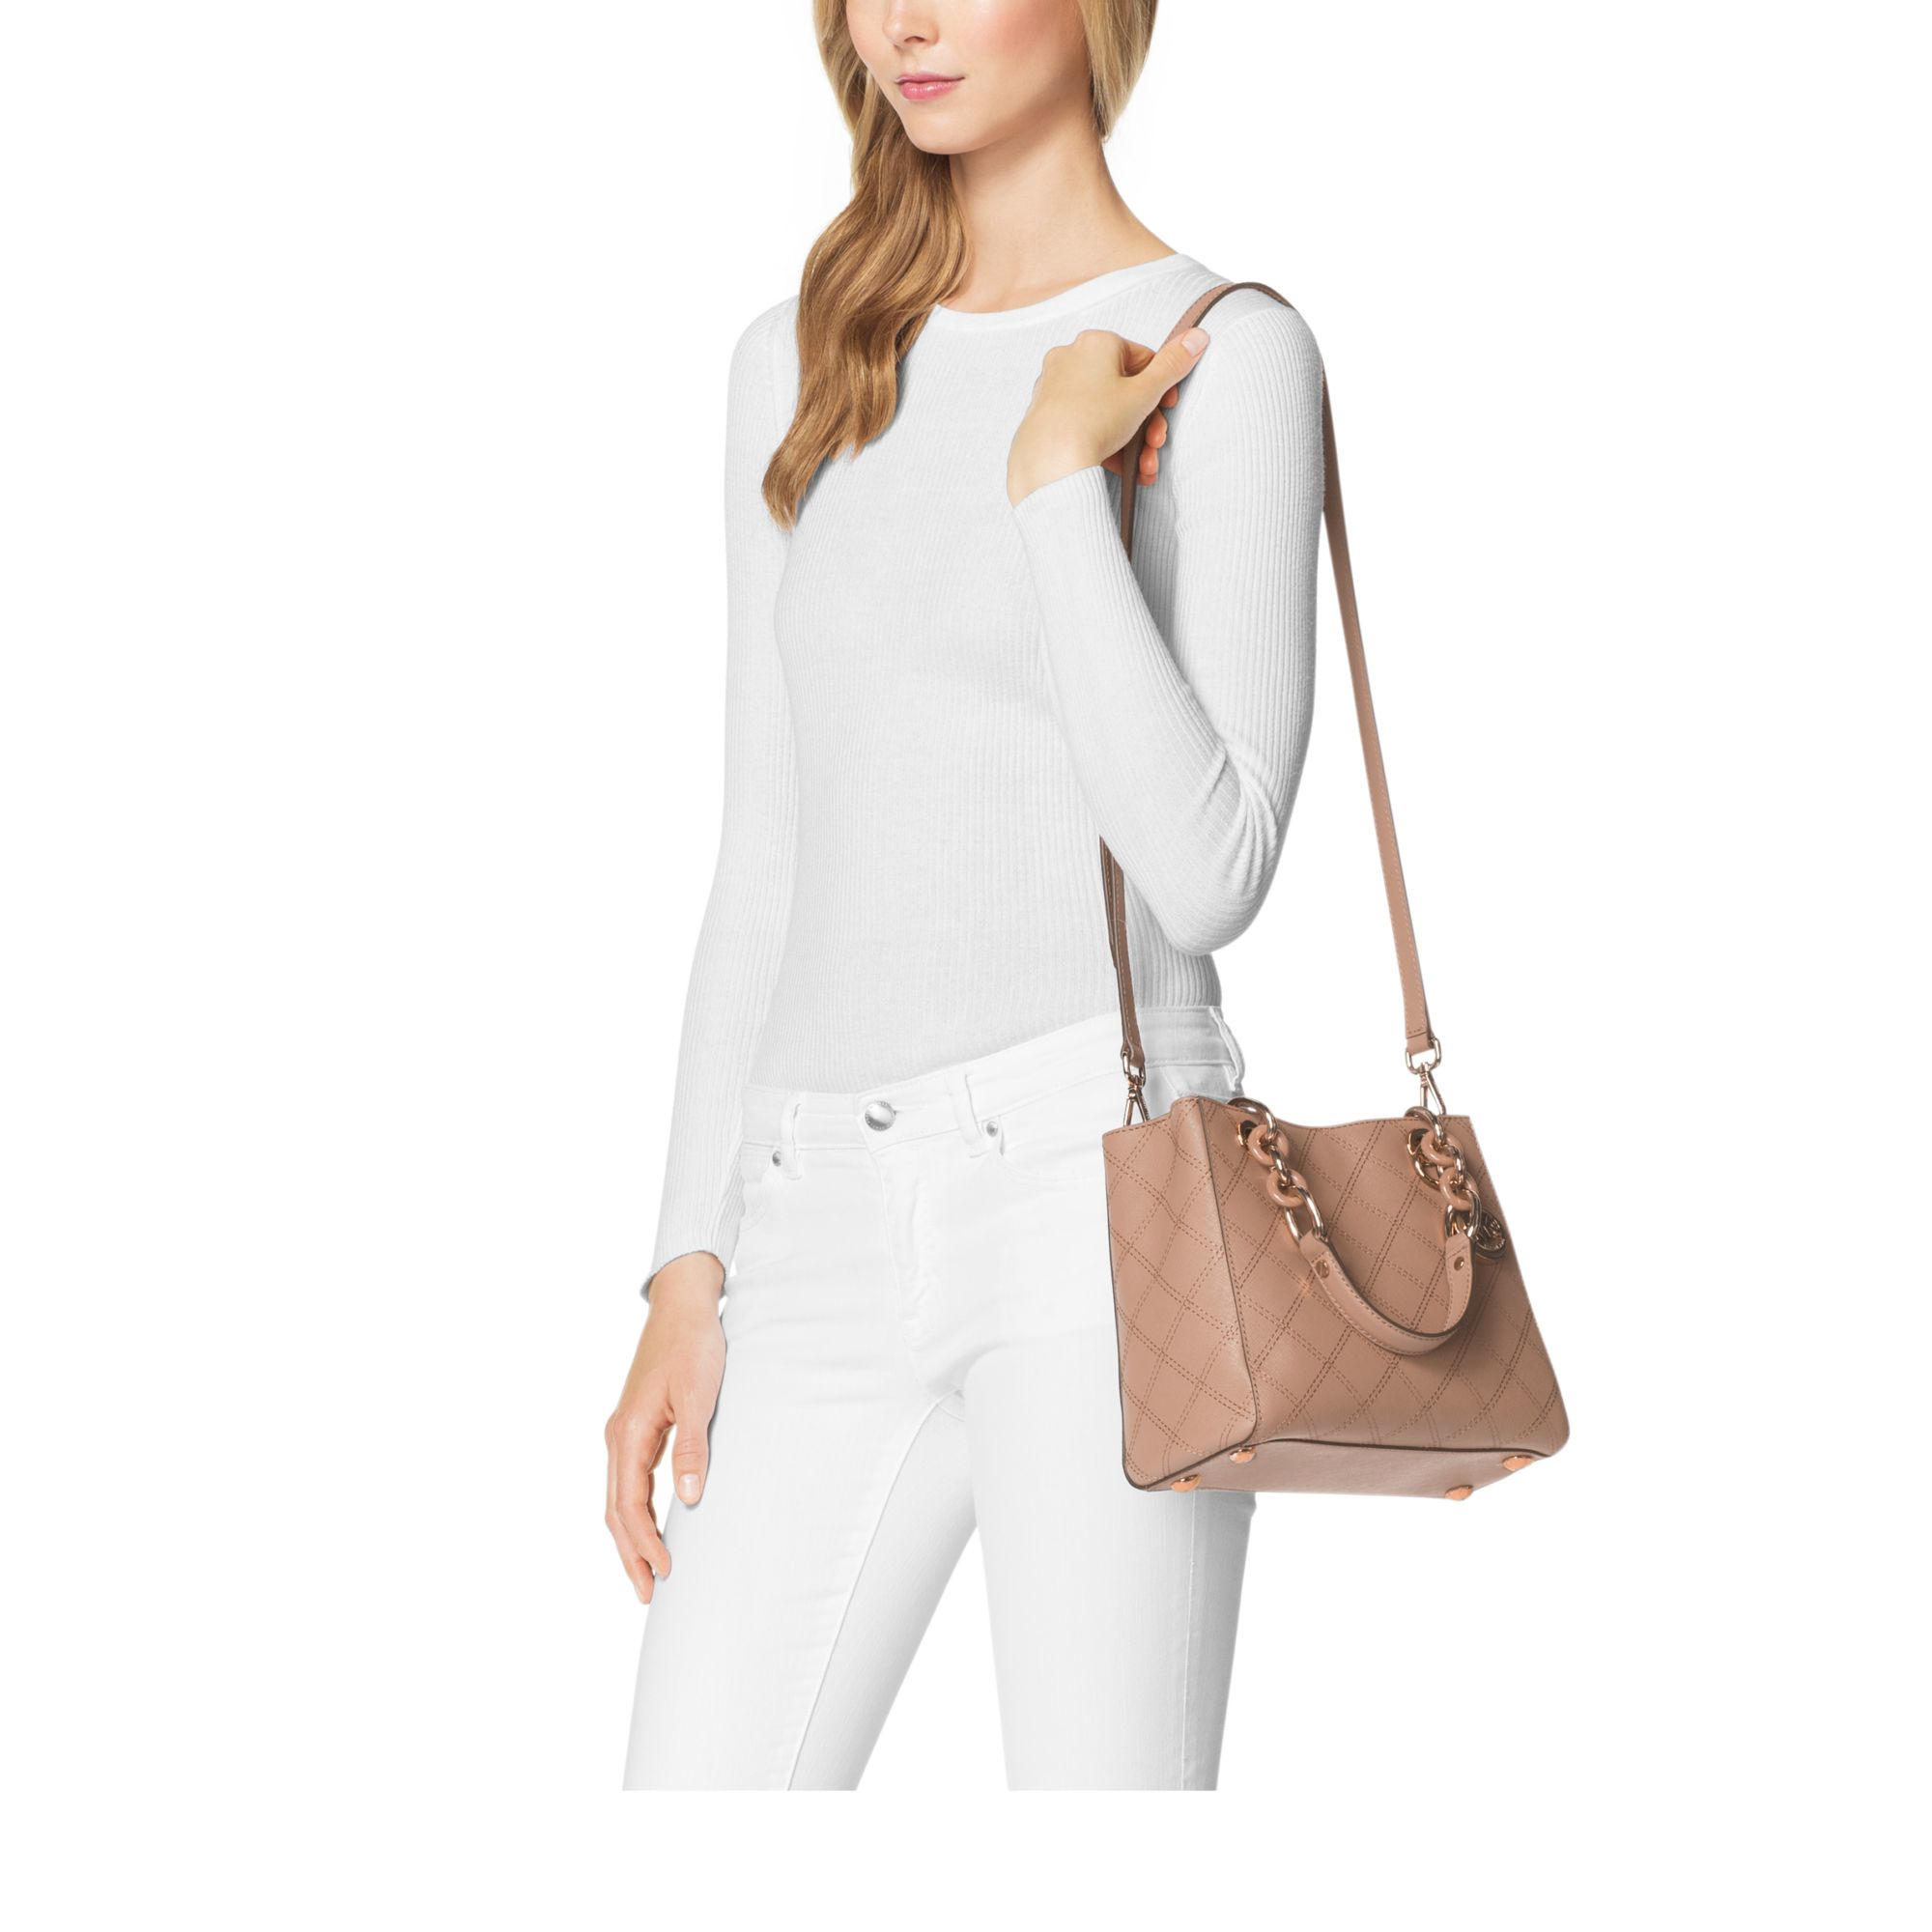 3e9755ad2f Lyst - Michael Kors Cynthia Small Saffiano-Leather Satchel .